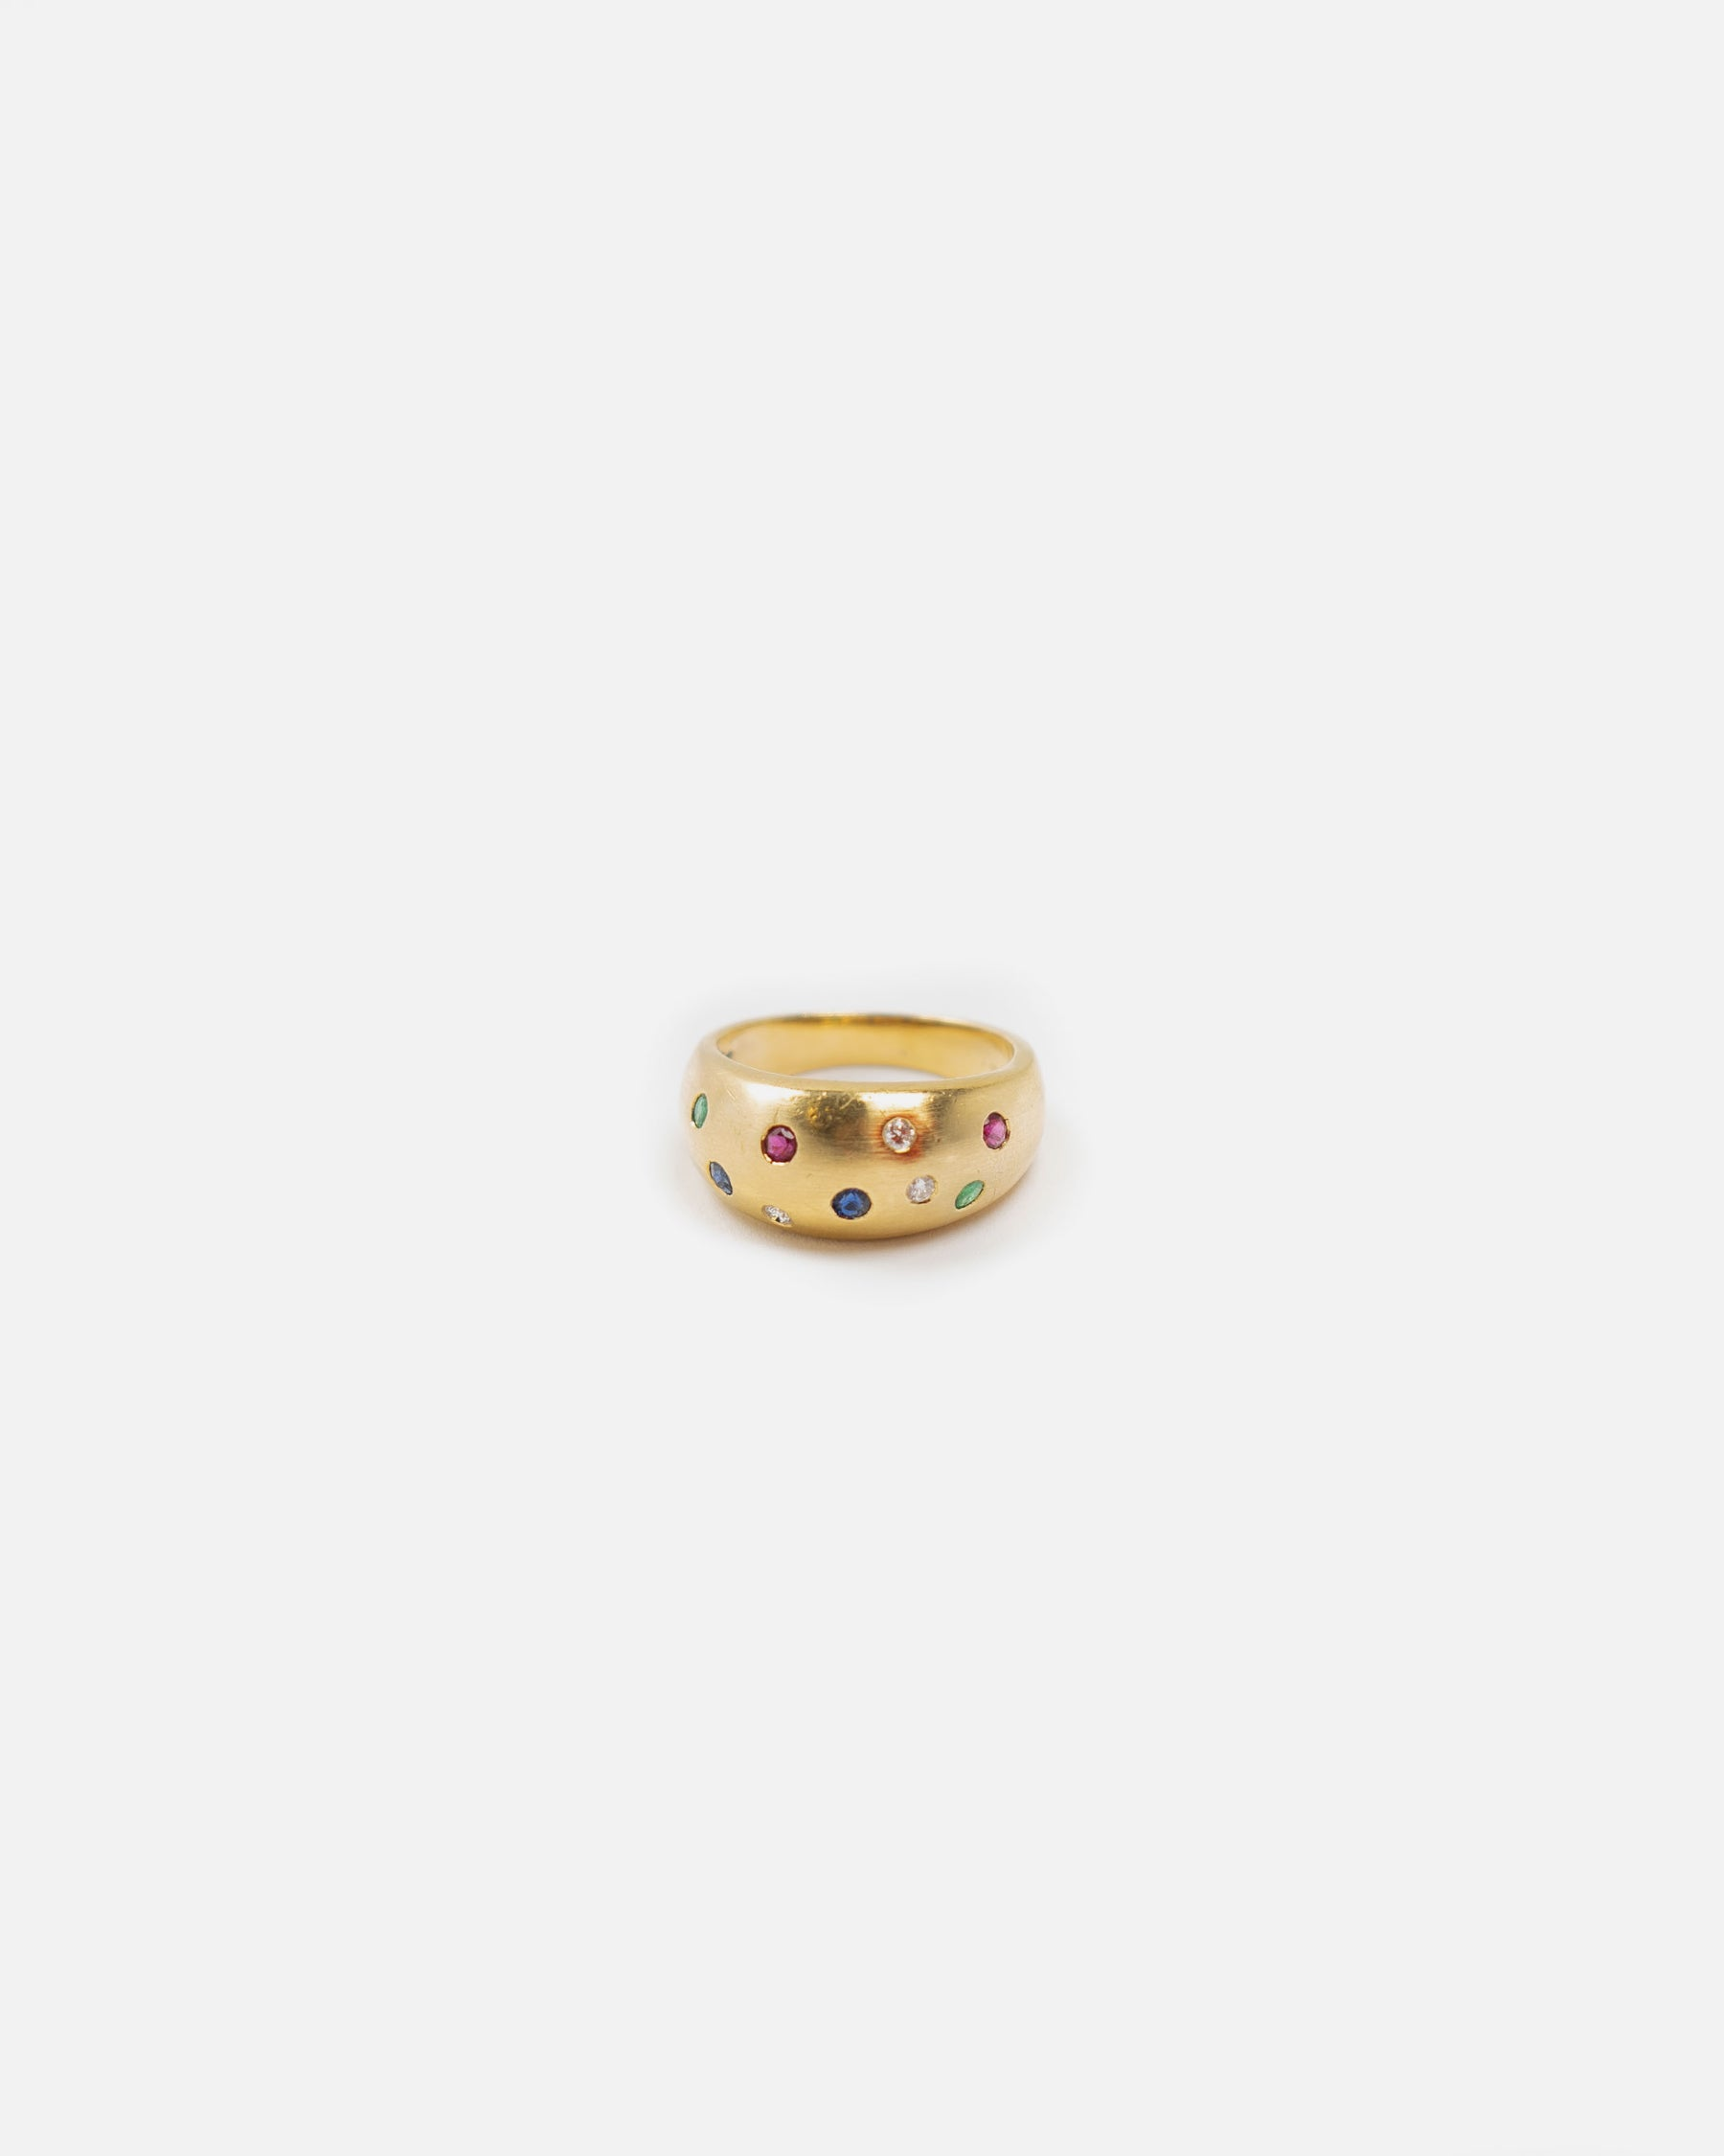 18K Gold W/ 4 Color Stones Ring